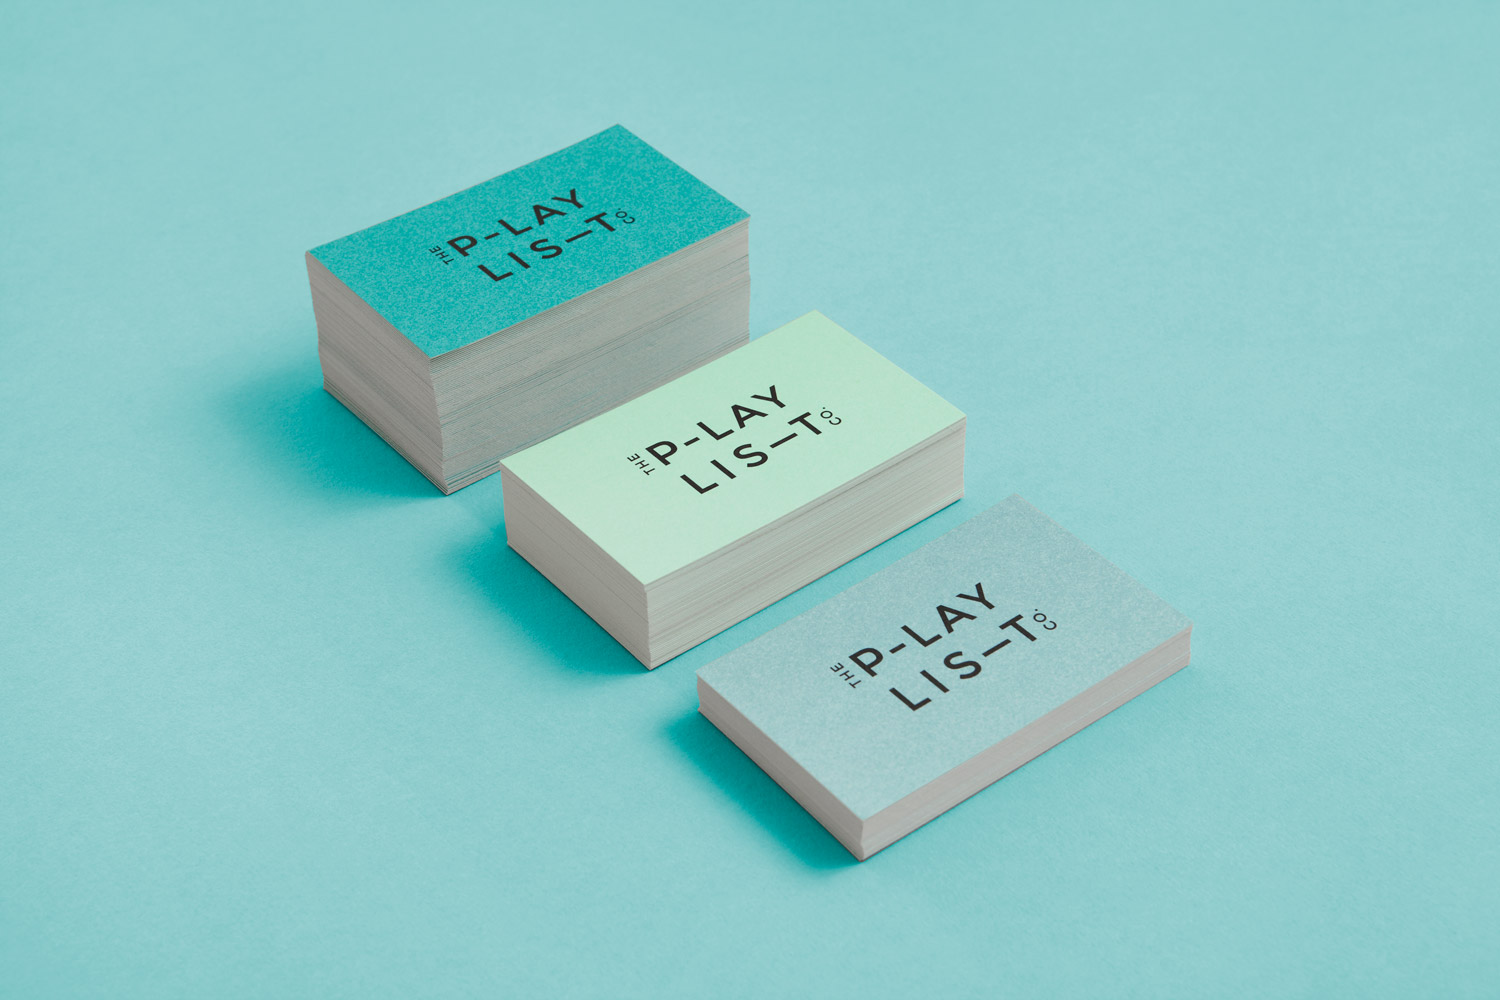 Brand identity and business cards for Toronto based custom soundtrack business The Playlist Co. by graphic design studio Blok